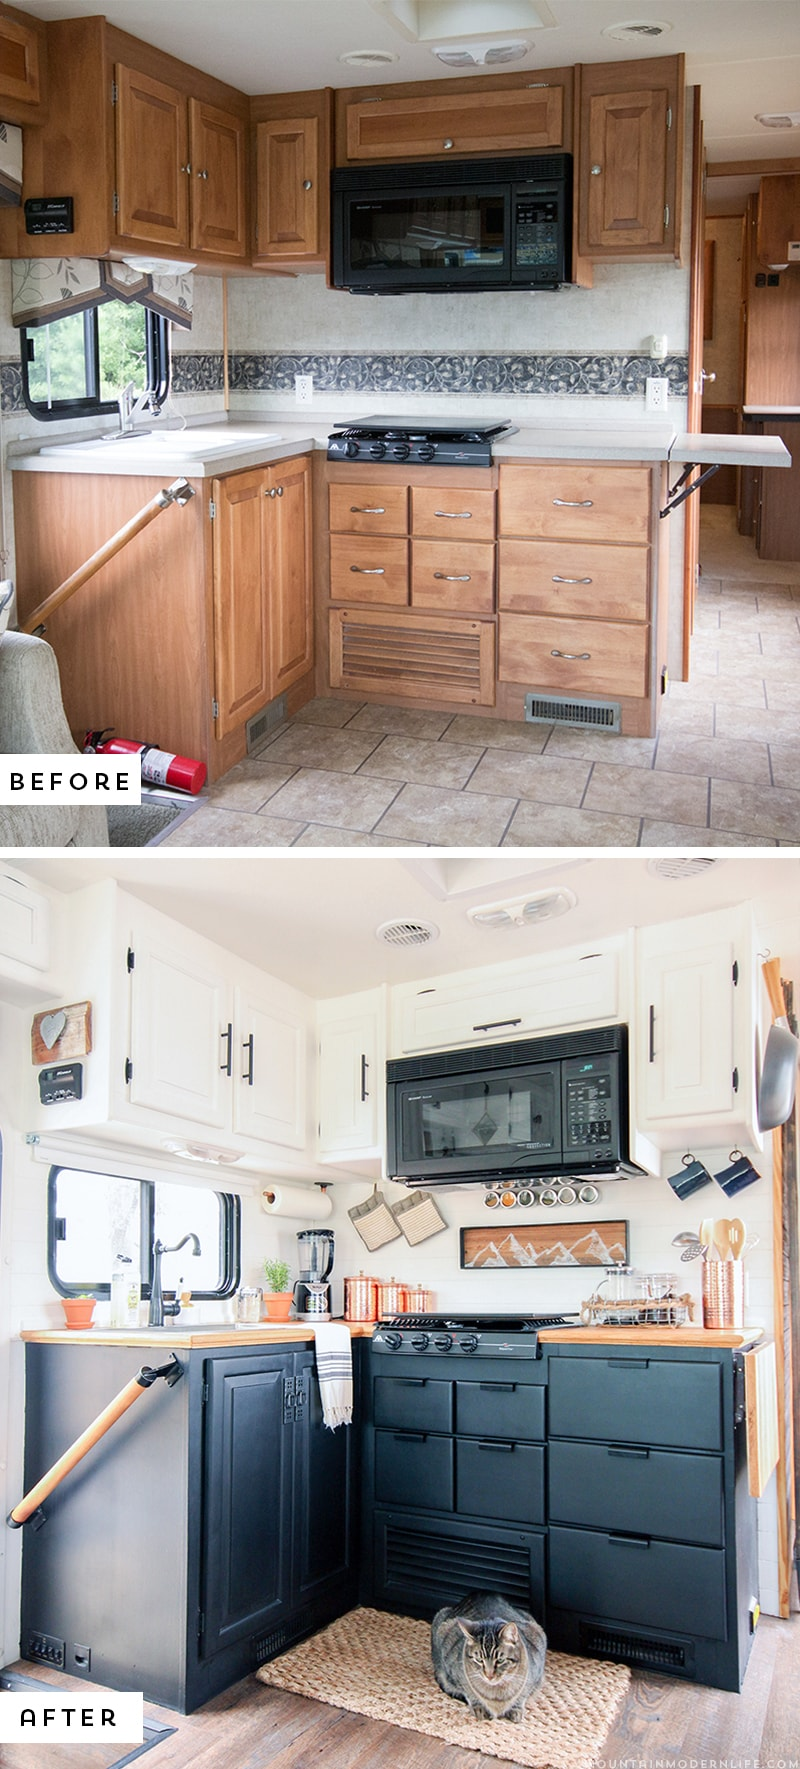 tiffin-openroad-rv-kitchen-renovation-before-and-after-mountainmodernlife-com